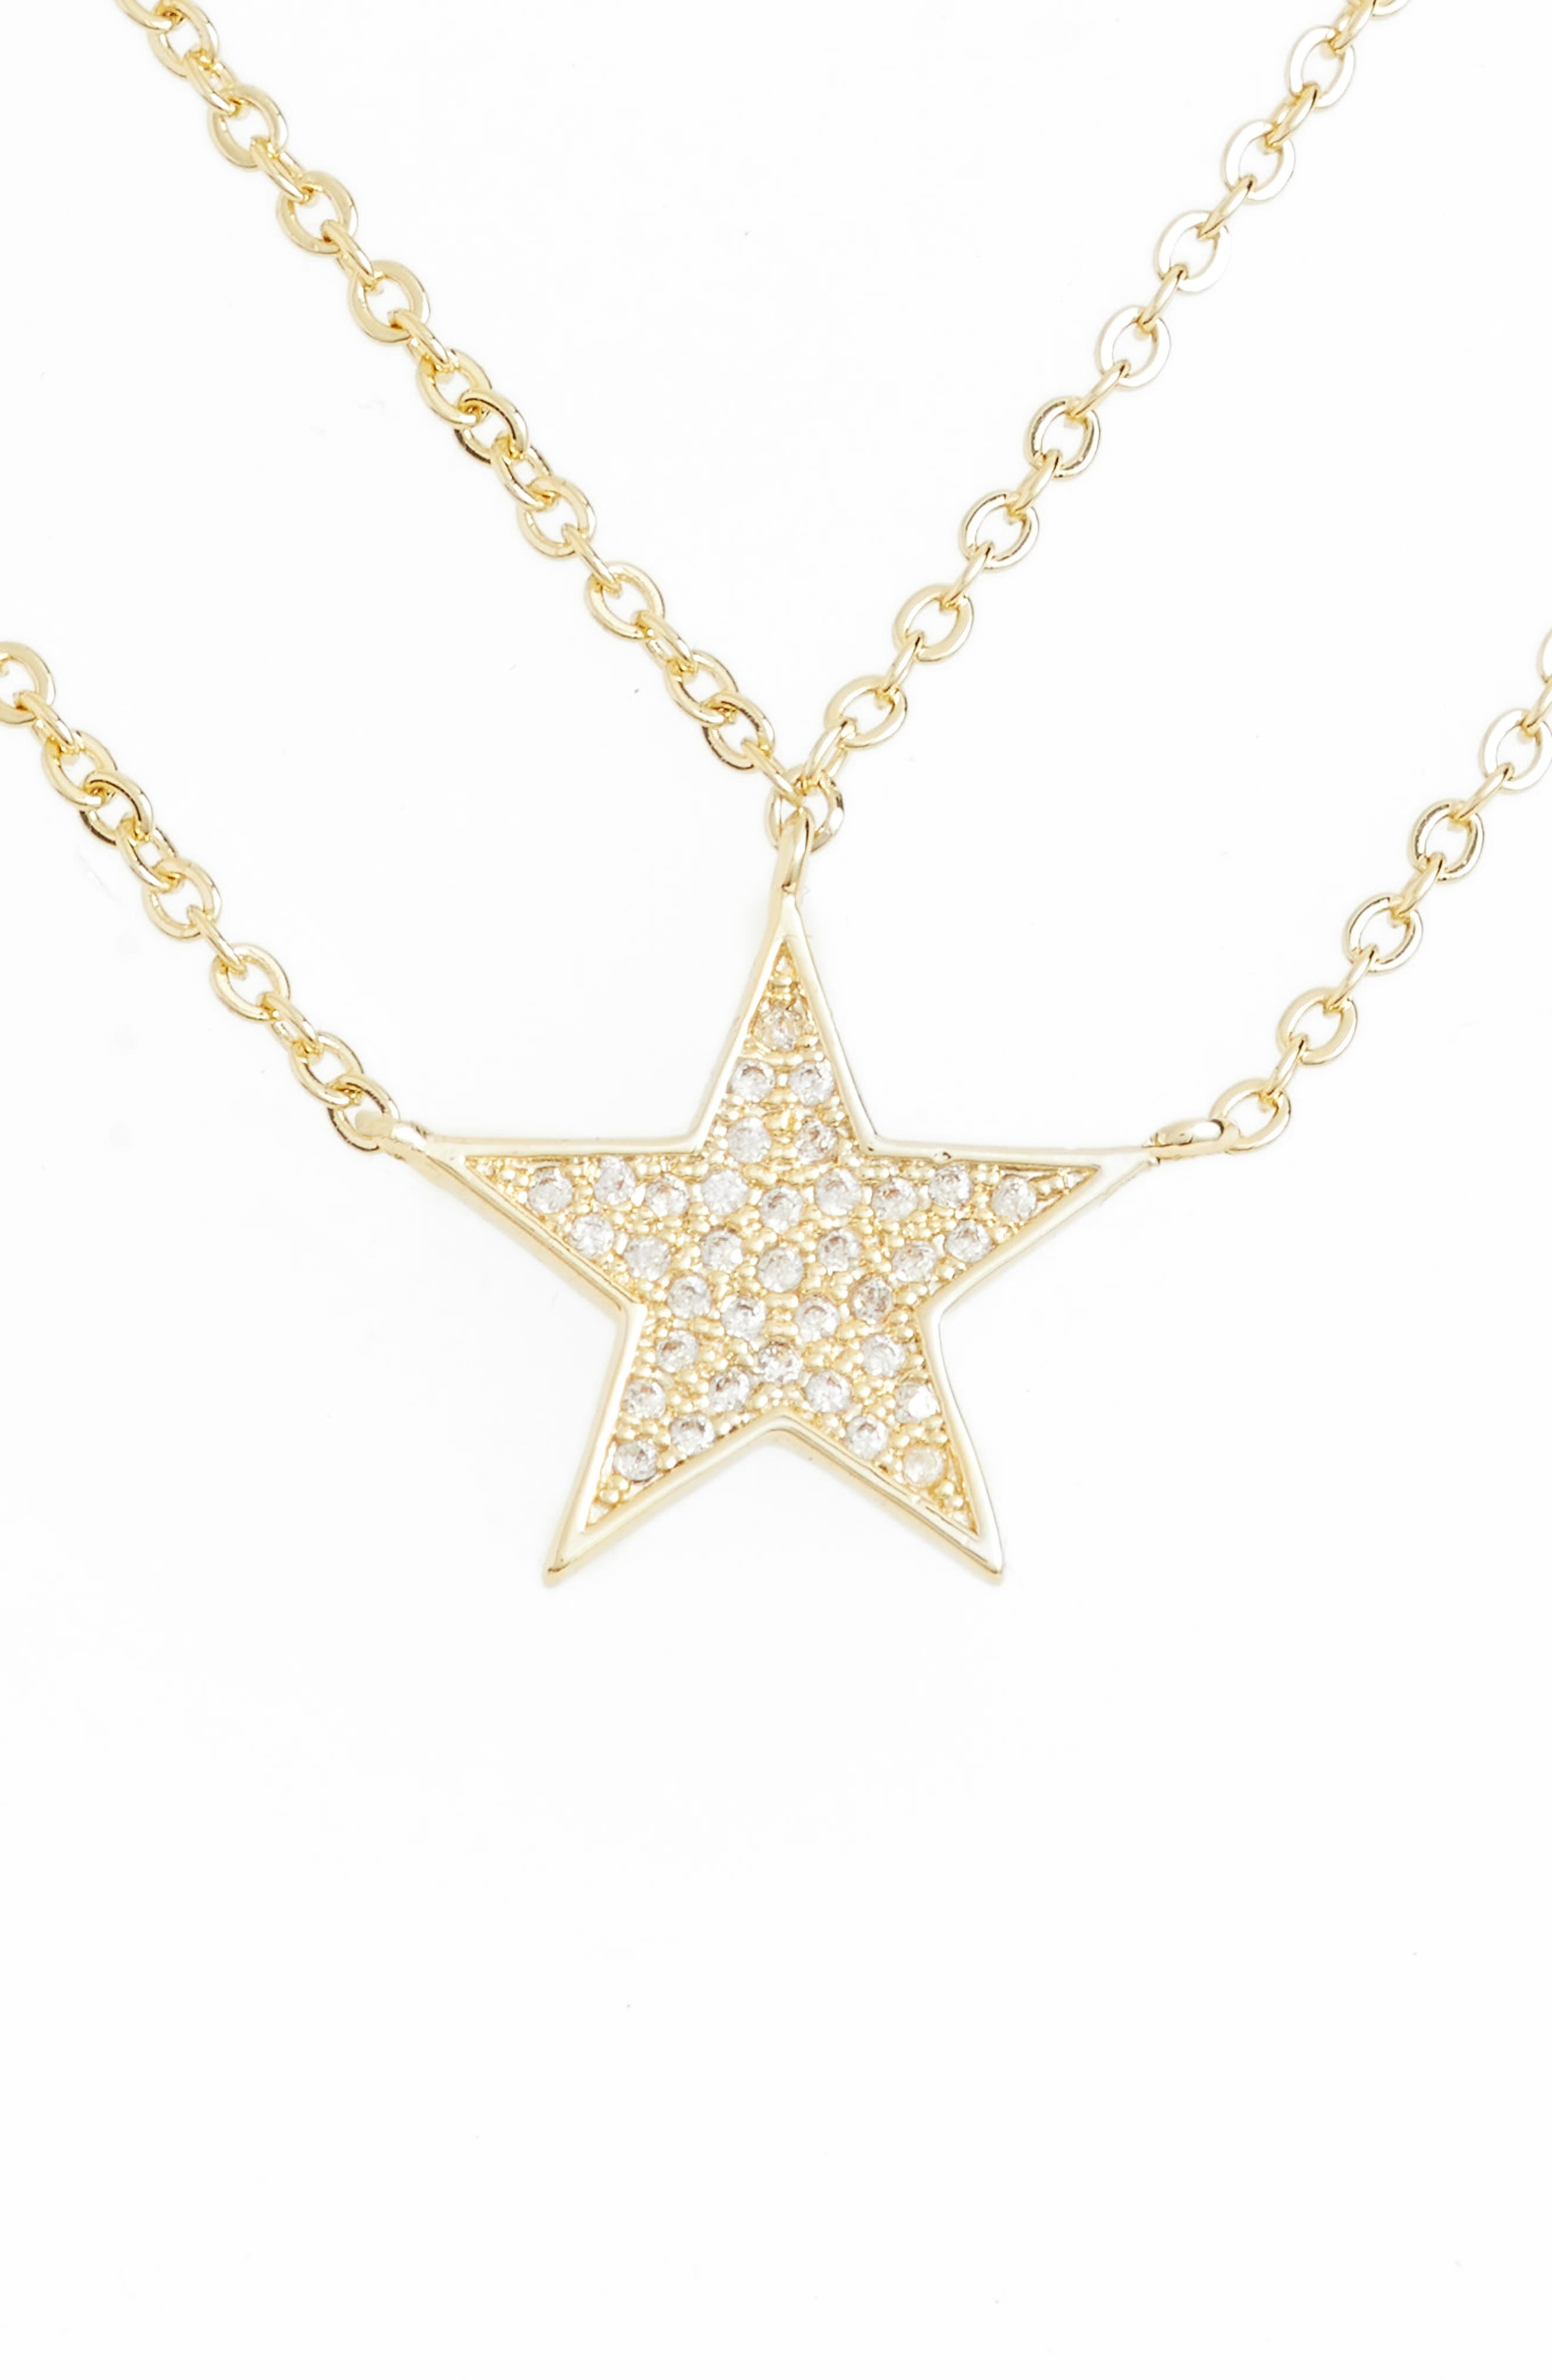 MELINDA MARIA YOU'RE A STAR NECKLACE